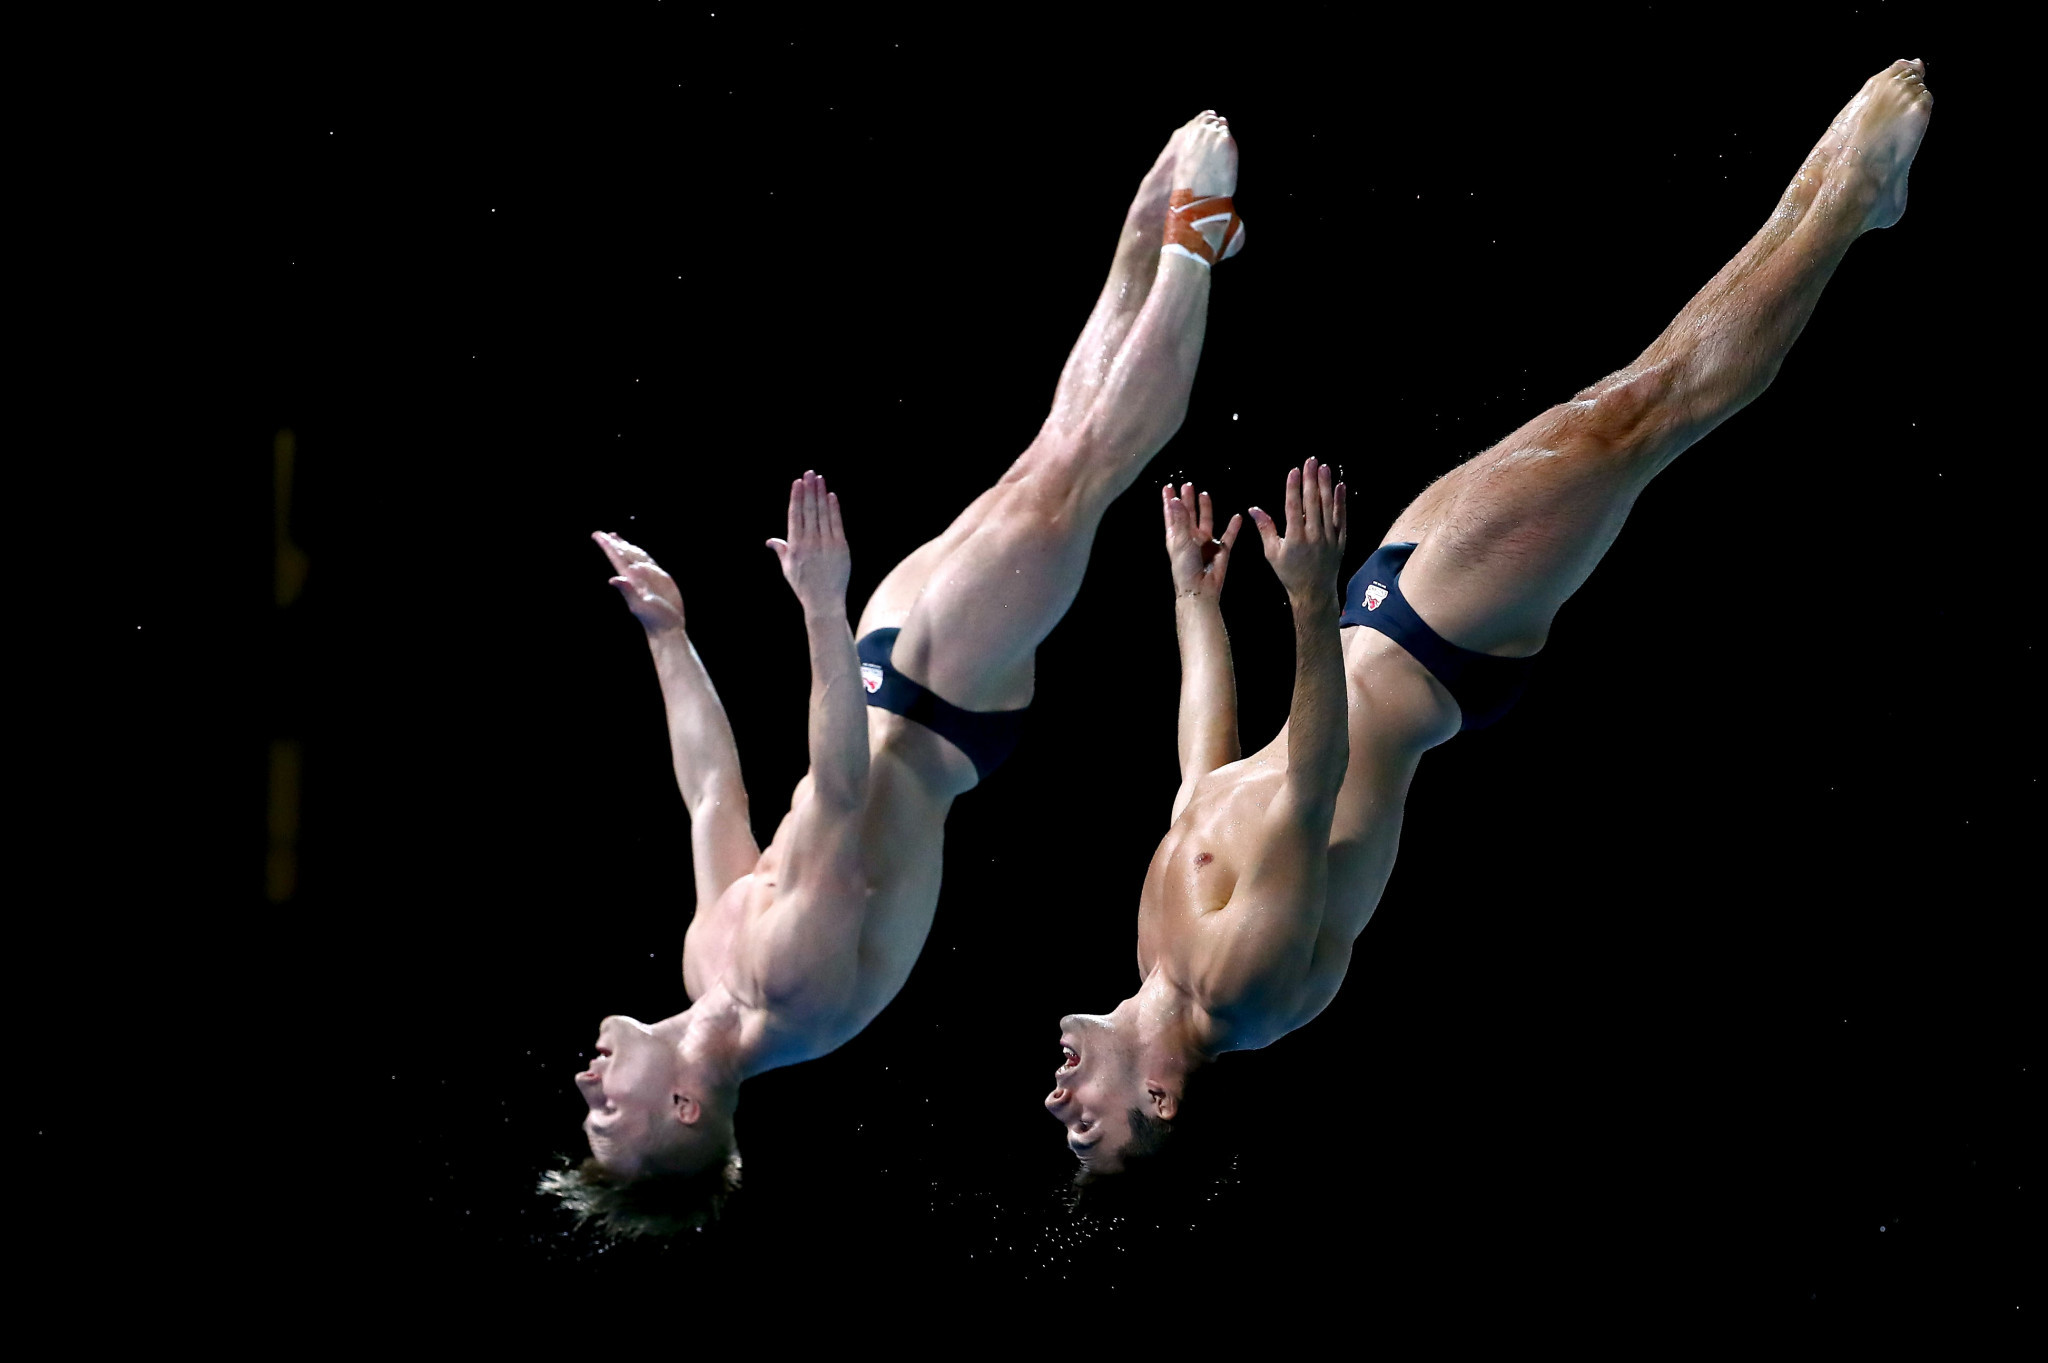 Chris Mears and Jack Laugher defended their synchronised springboard title title ©Getty Images